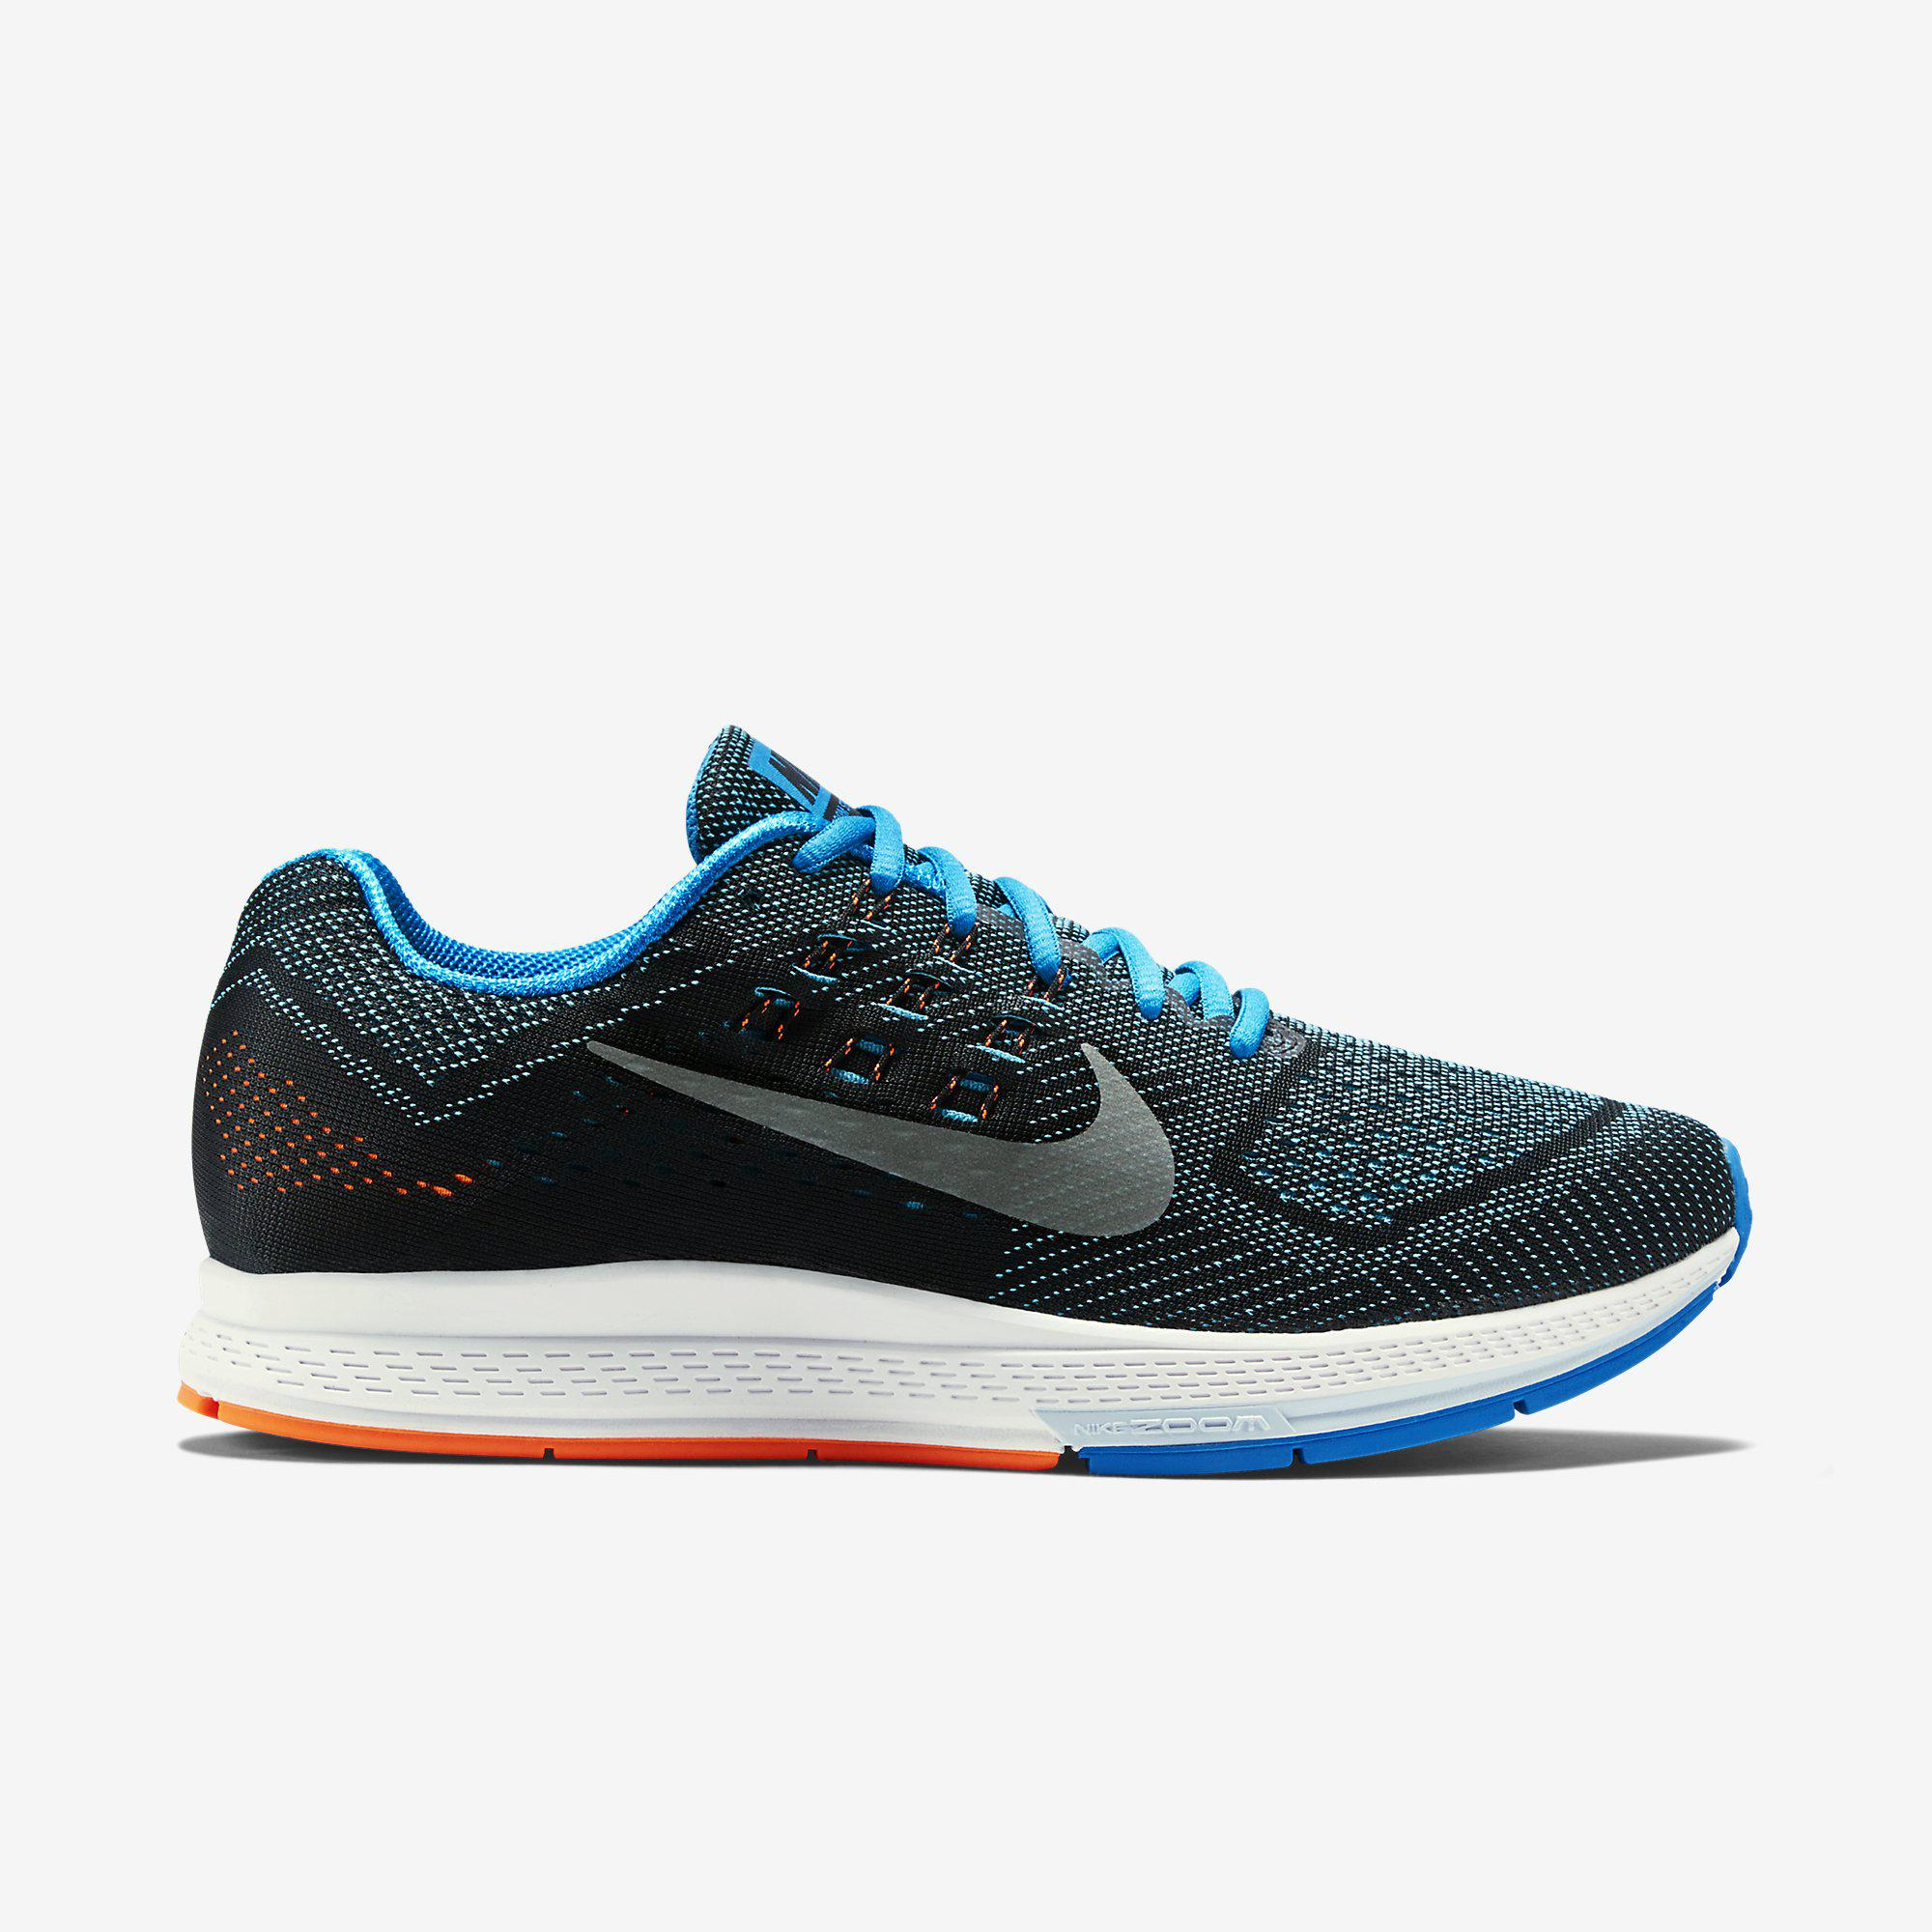 32bc550b9b62 Nike Mens Air Zoom Structure 18 Running Shoes - Blue Lagoon - Tennisnuts.com